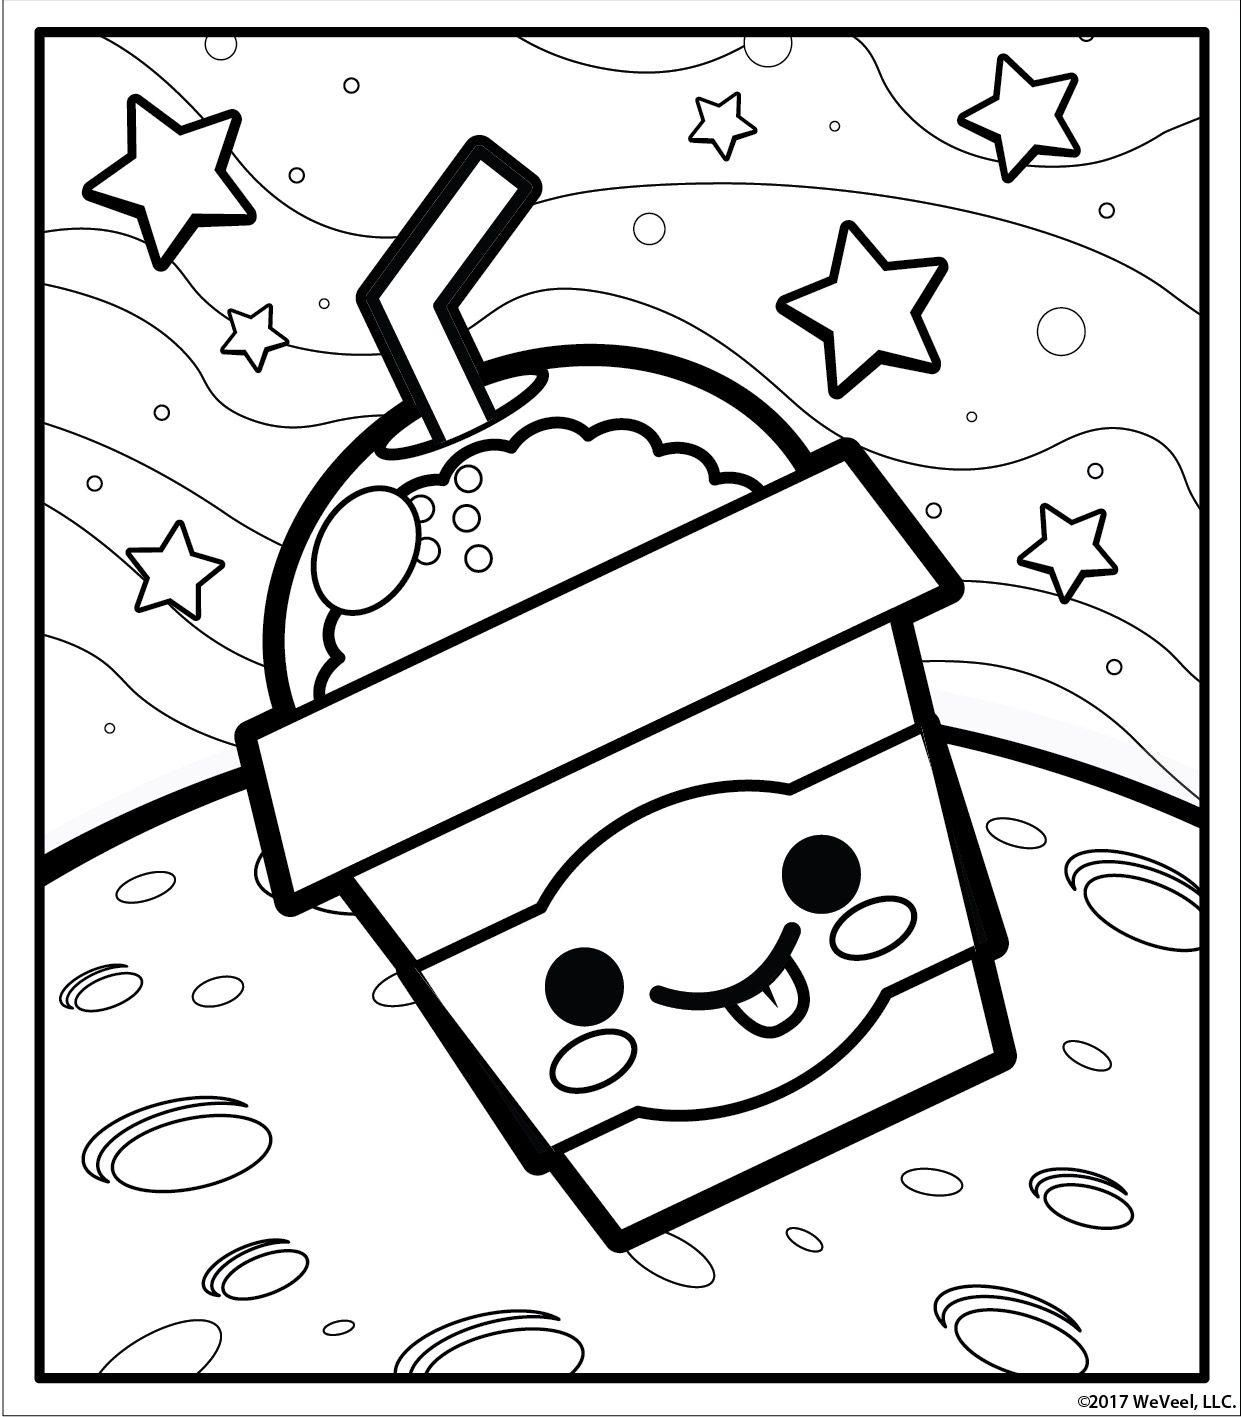 18 Coloring Page Cute Unicorn Coloring Pages Monster Coloring Pages Easy Coloring Pages